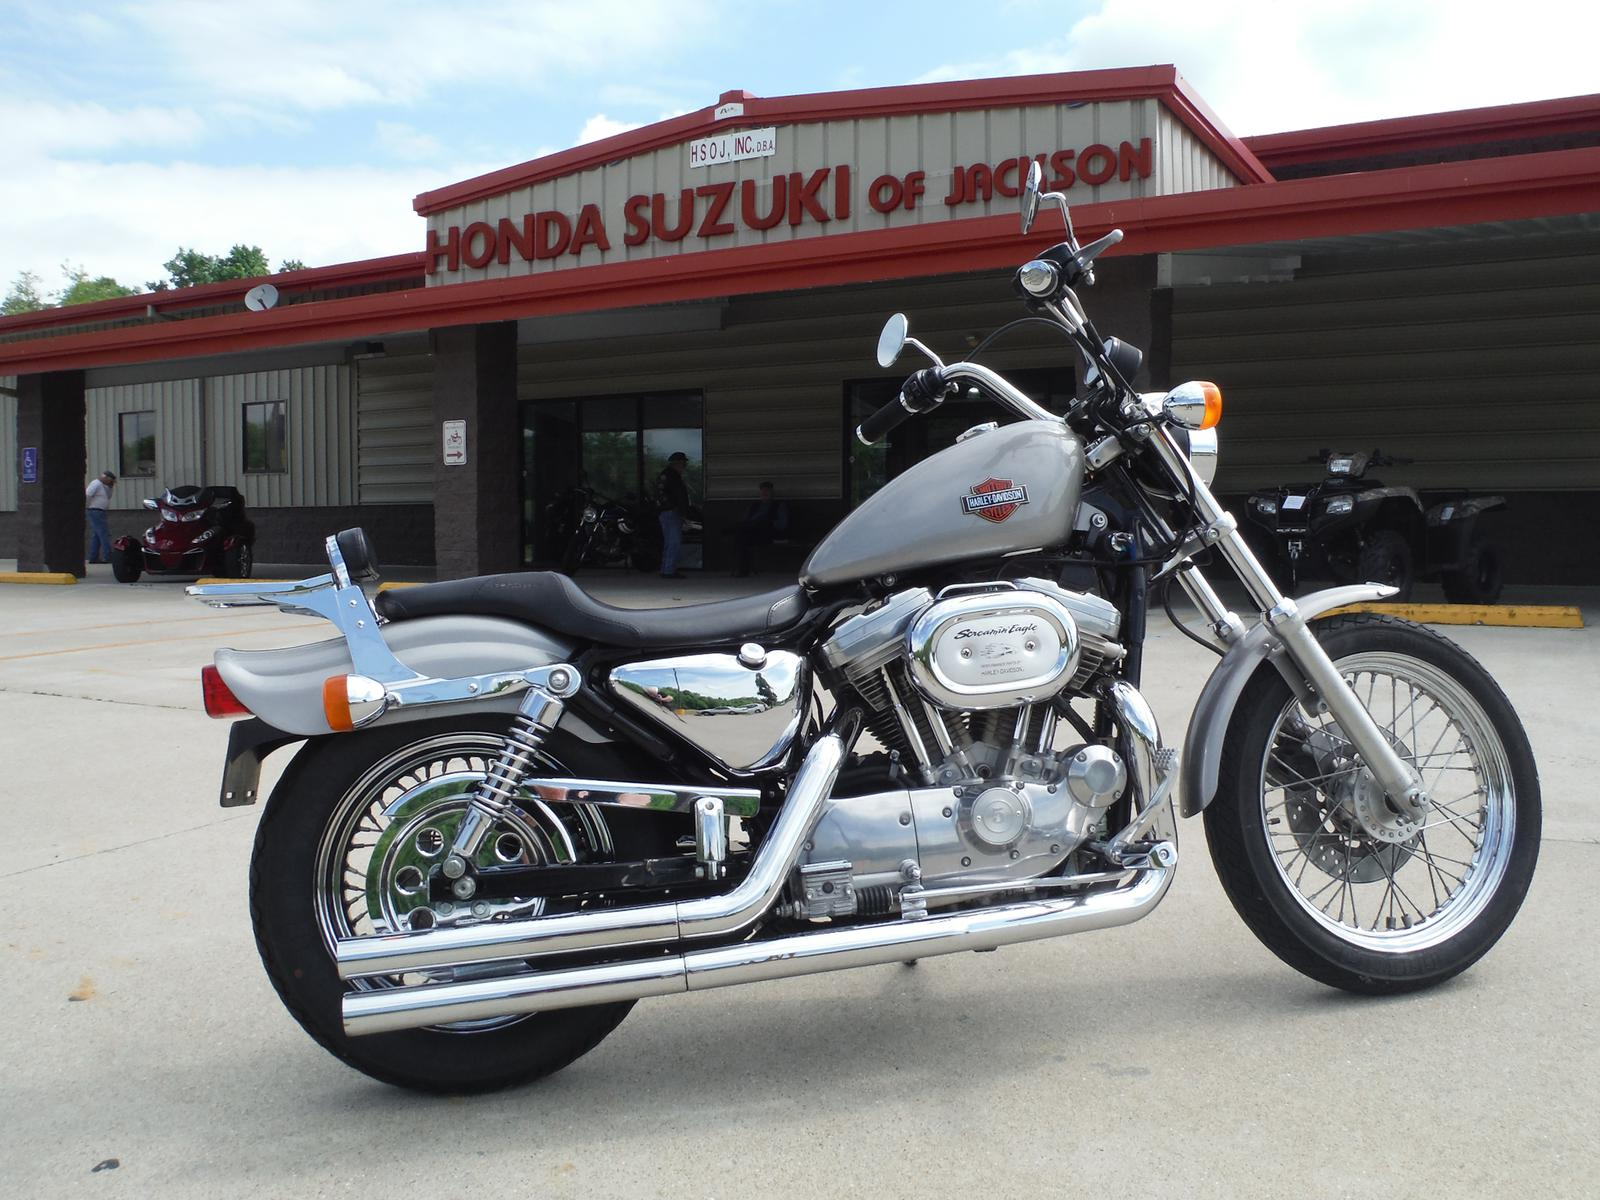 1996 Harley-Davidson XL883 SPORTSTER, motorcycle listing